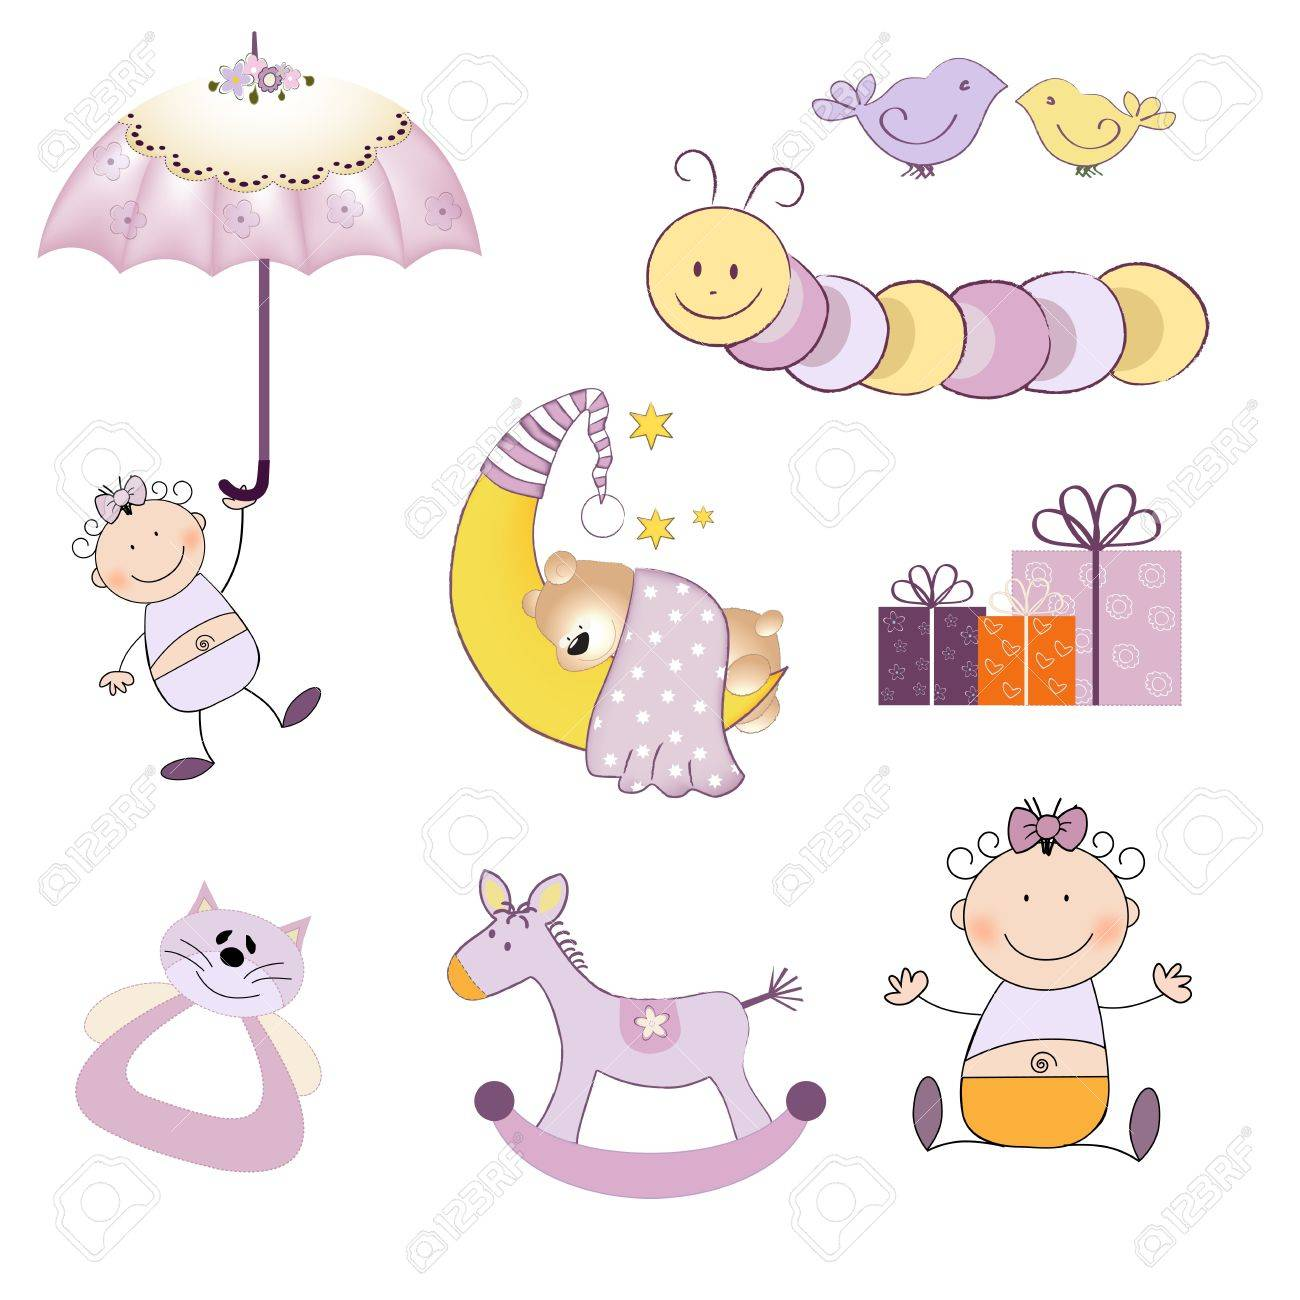 baby girl items set isolated on white background, vector illustration Stock Vector - 20169323